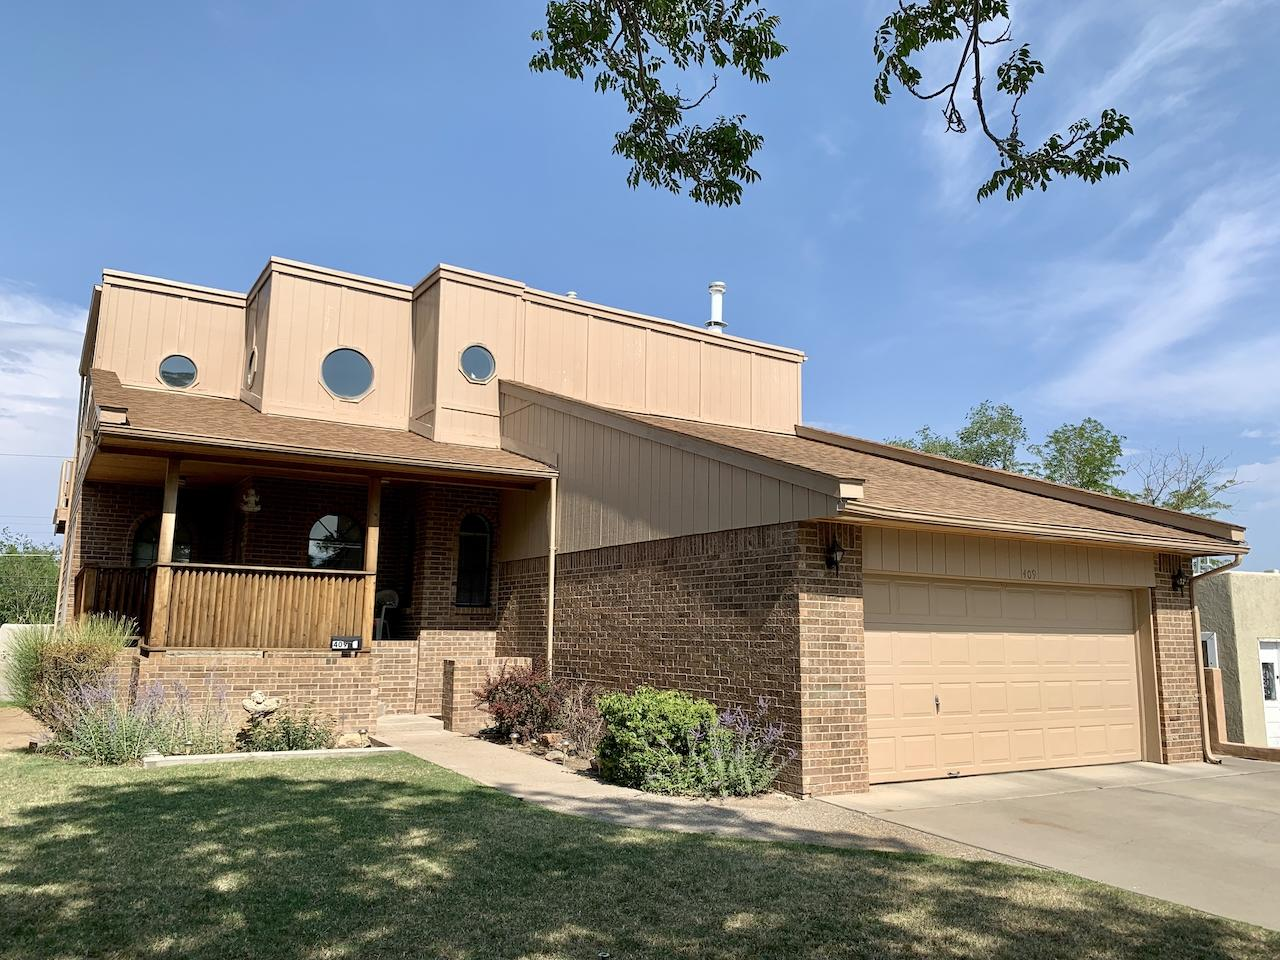 This gorgeous, energy efficient home is just 5 minutes from Nob Hill & UNM! The front covered patio welcomes you into the main level which includes an office or family room just inside the front door. The sunken living area boasts high ceilings with big windows and lots of light! There is a tiled sitting room right off of the kitchen with access to a large outdoor patio for grilling and entertaining. Relax on the balcony off of the huge 550 SqFt master bedroom. There are 2 other bedrooms on the 2nd floor. The home also features a 1116 SqFt finished basement apartment (not included in the square footage) with a separate entrance and covered patio. With R-T (Residential-Townhouse) zoning, the owners have been renting it out for decades. Also ideal for in-law quarters or short term rentals!